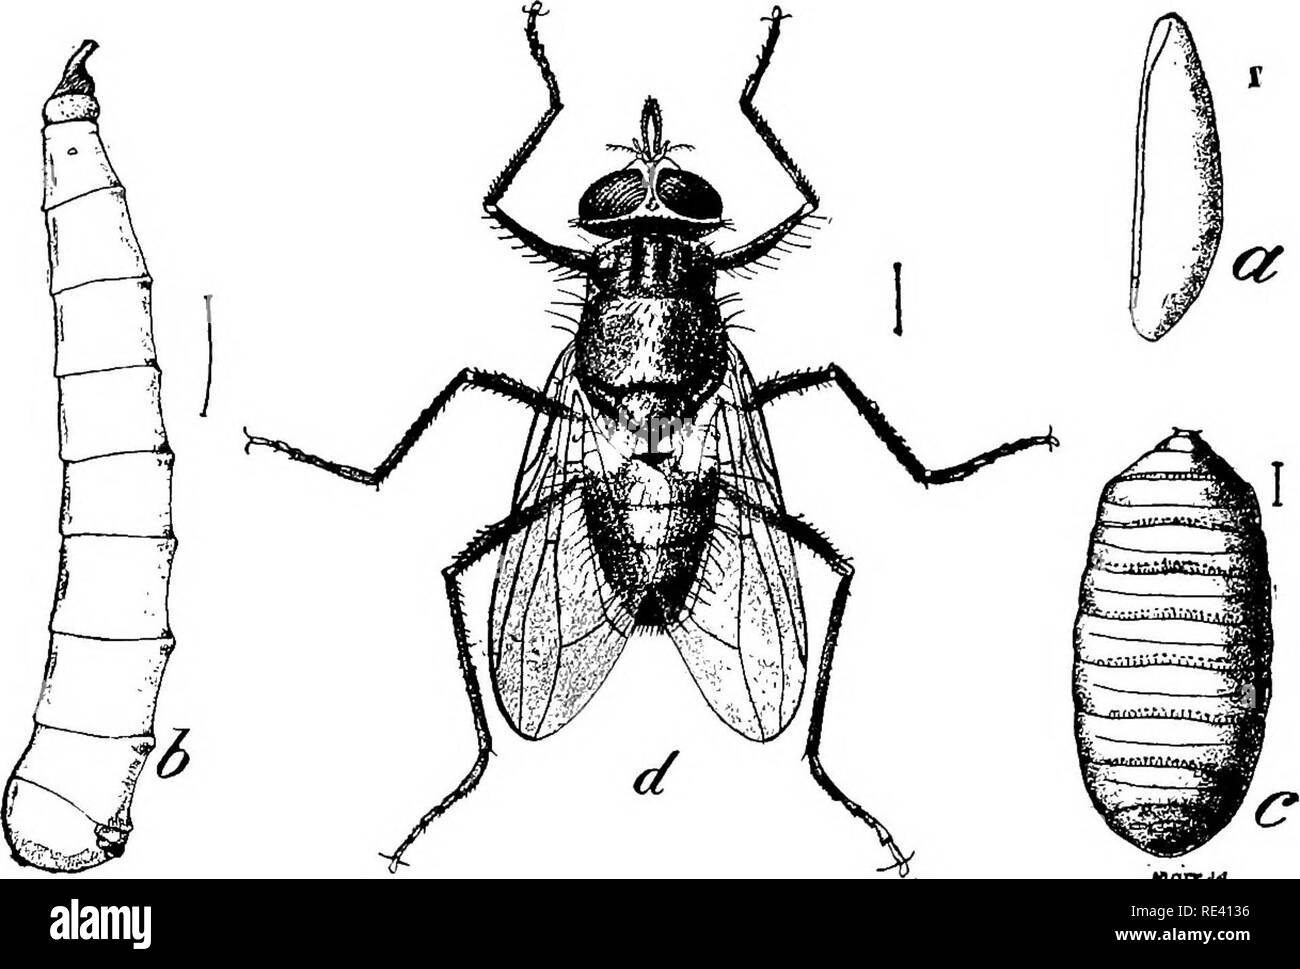 Handbook Of Medical Entomology Insect Pests Insects As Carriers Of Disease Medical Parasitology 3o8 Hominoxious Arthropods At Rest Cluster Flies P Rudis And Related Species Widely Distributed Pollenia R D G